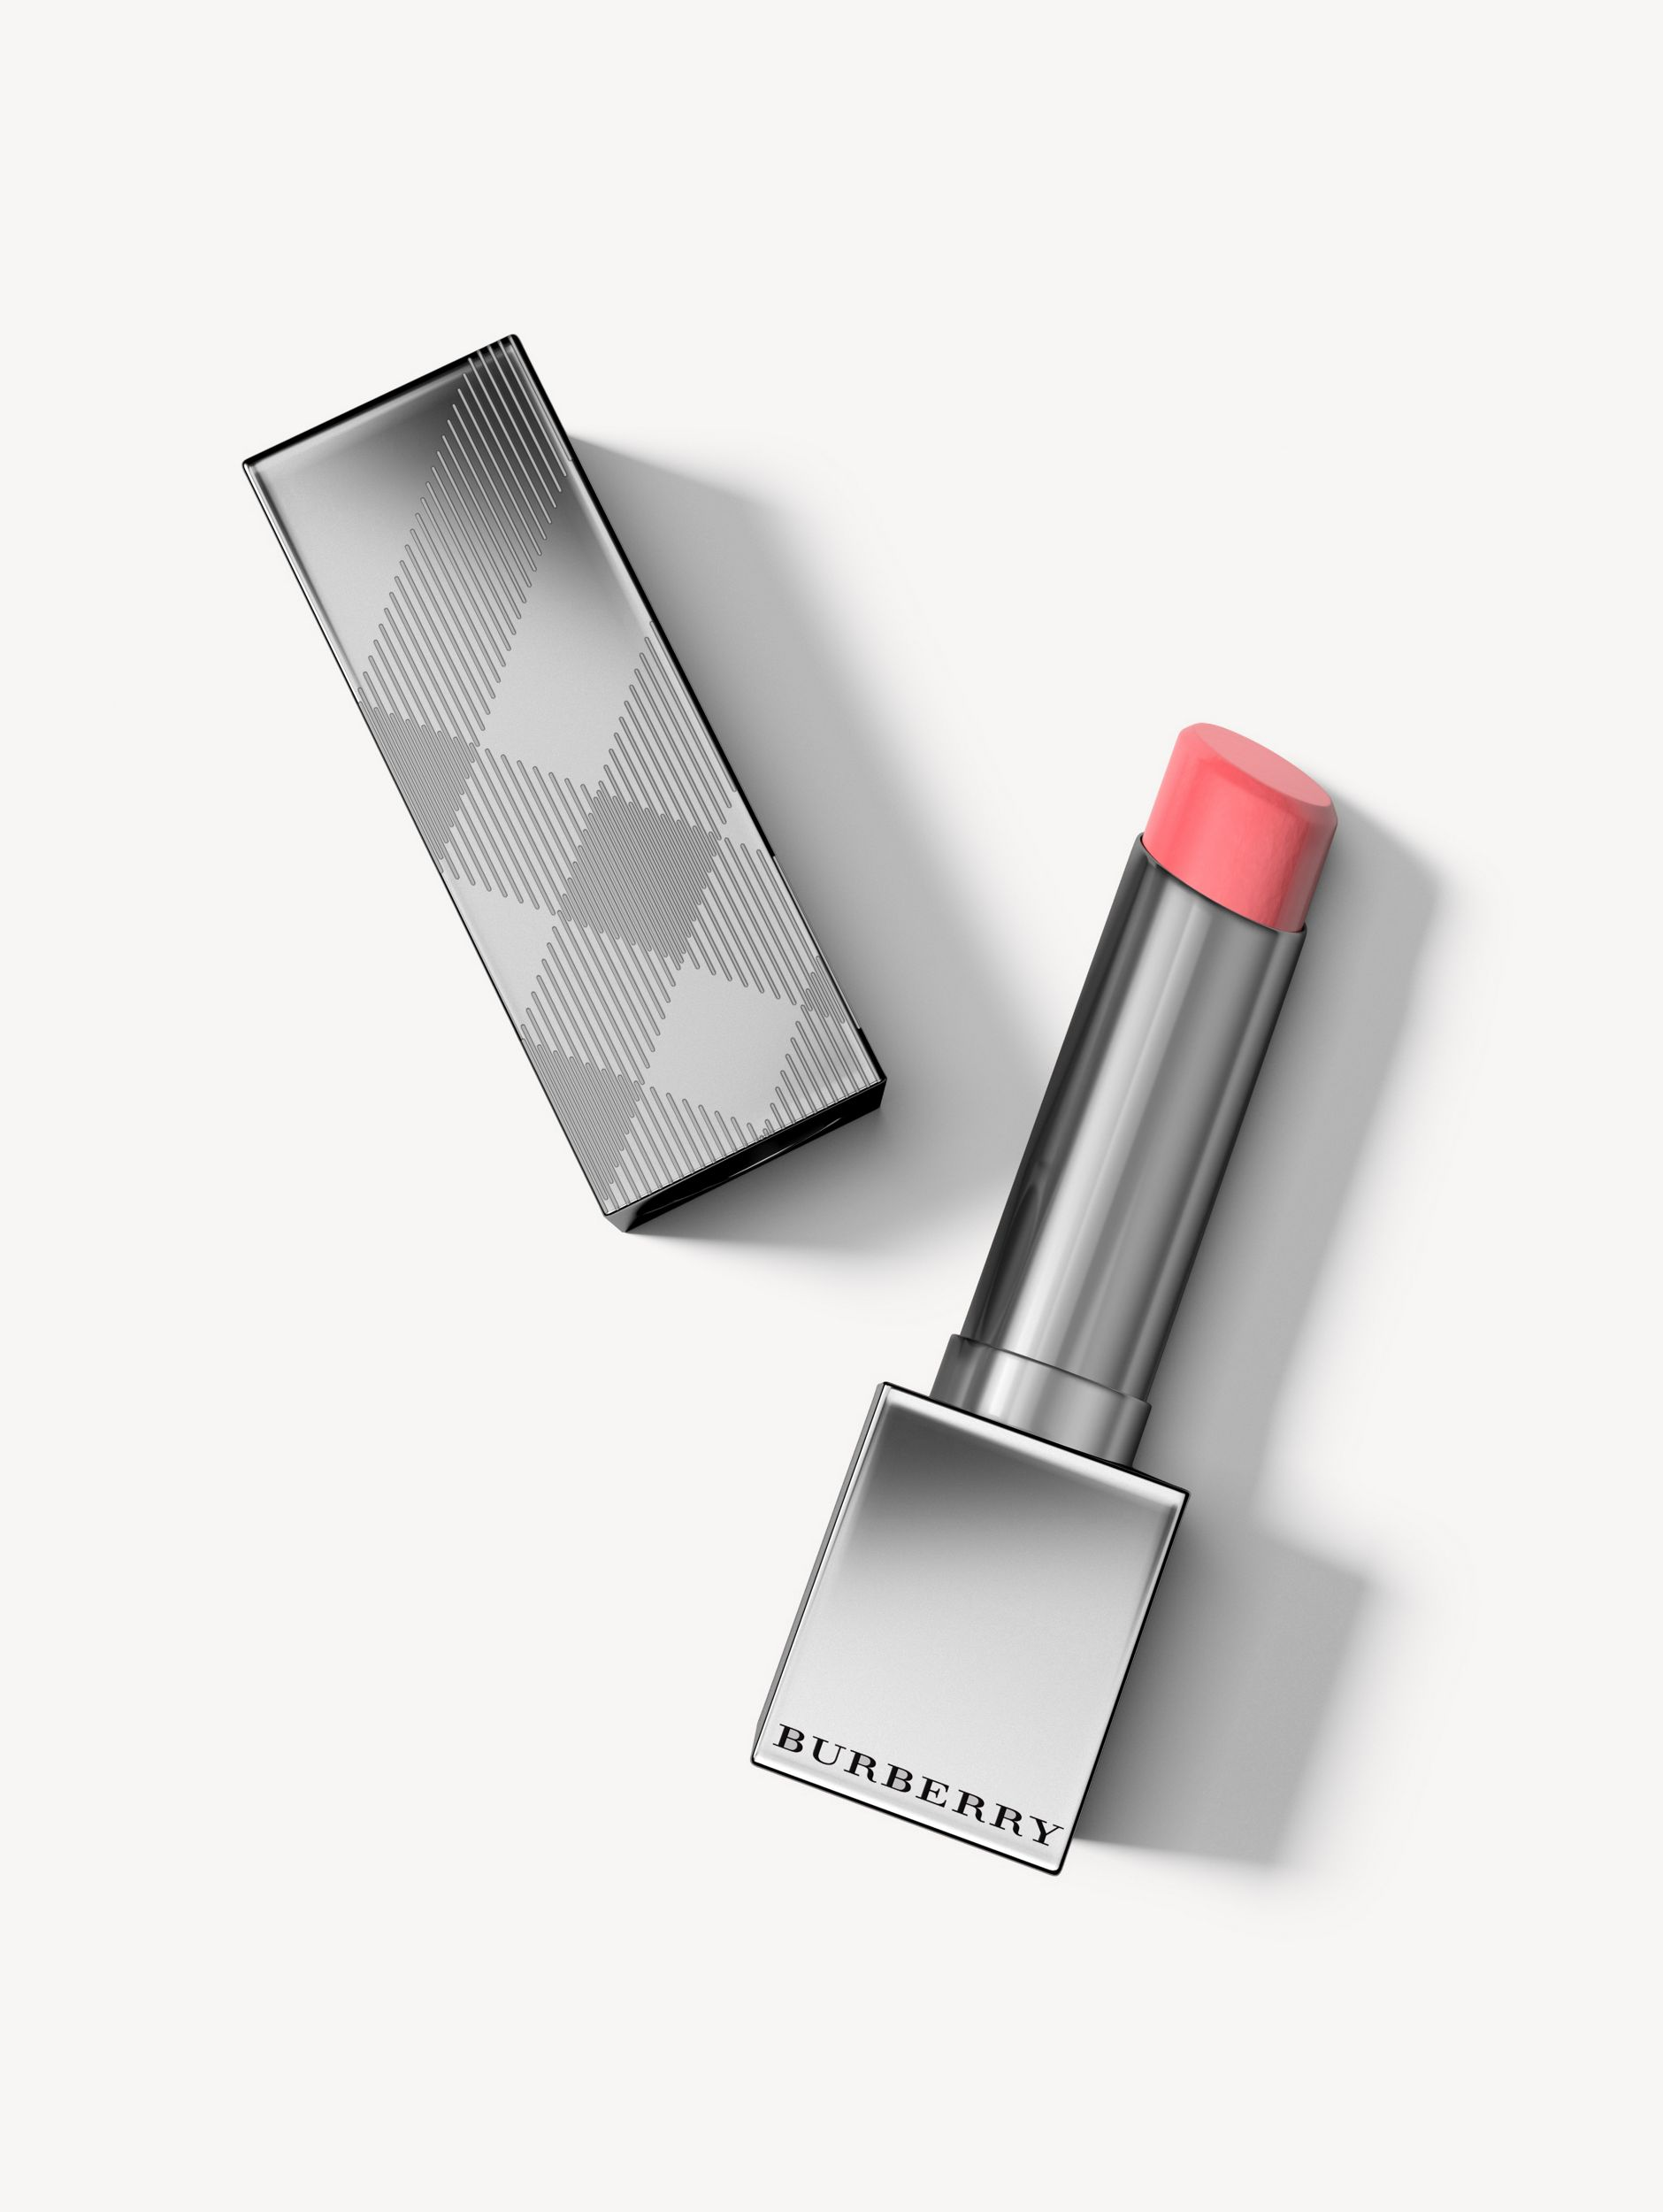 Burberry Kisses Sheer – Nude Pink No.205 - Women | Burberry Canada - 1